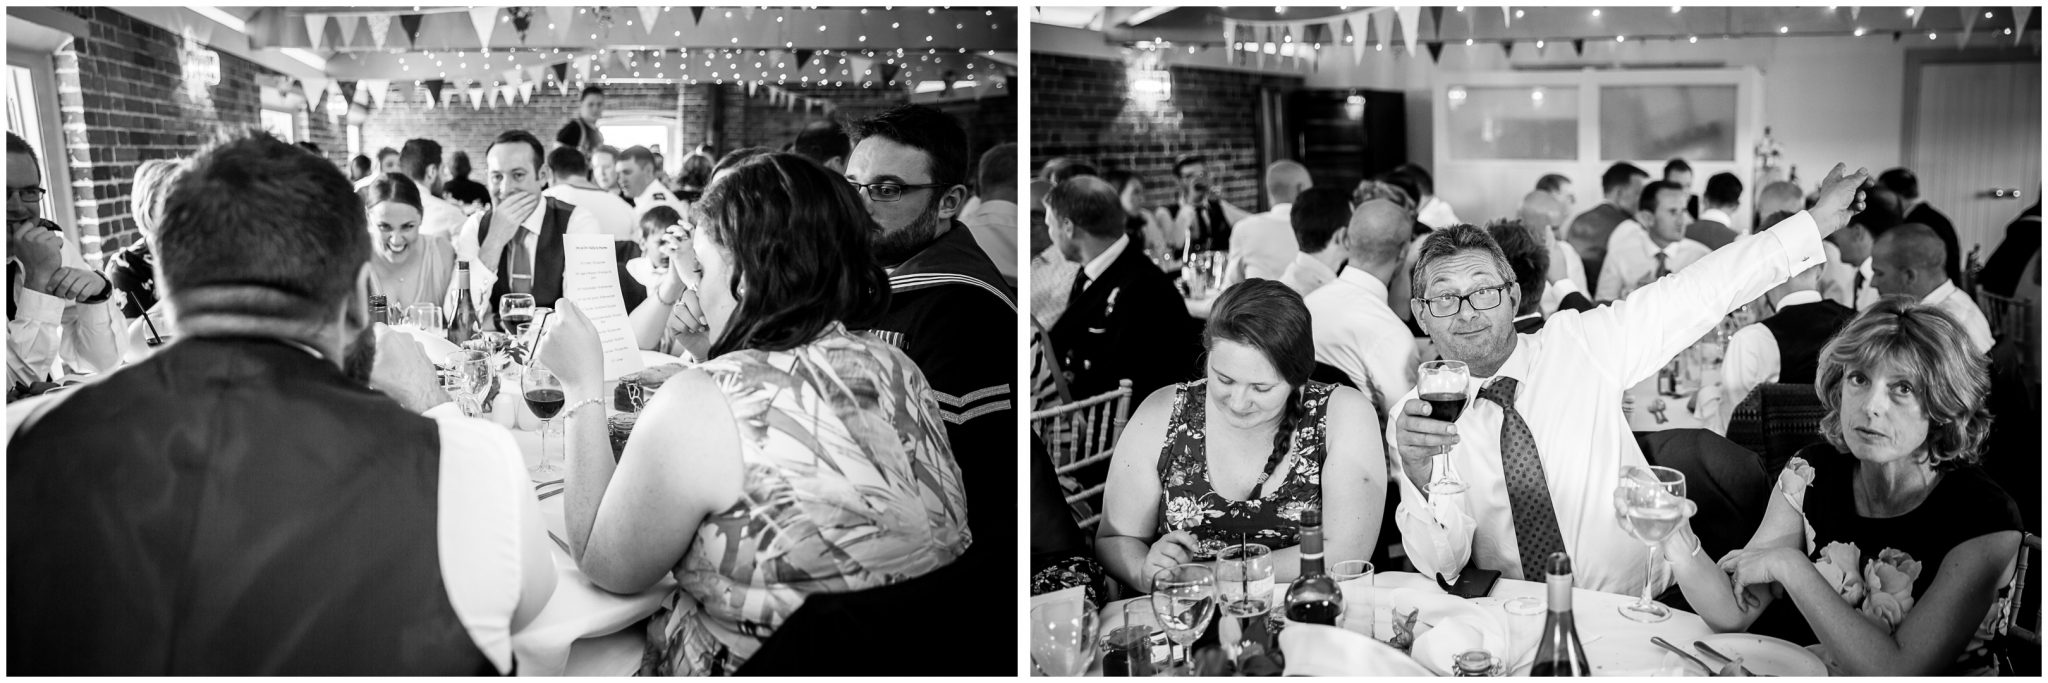 Sopley wedding photographer black and white guest candids